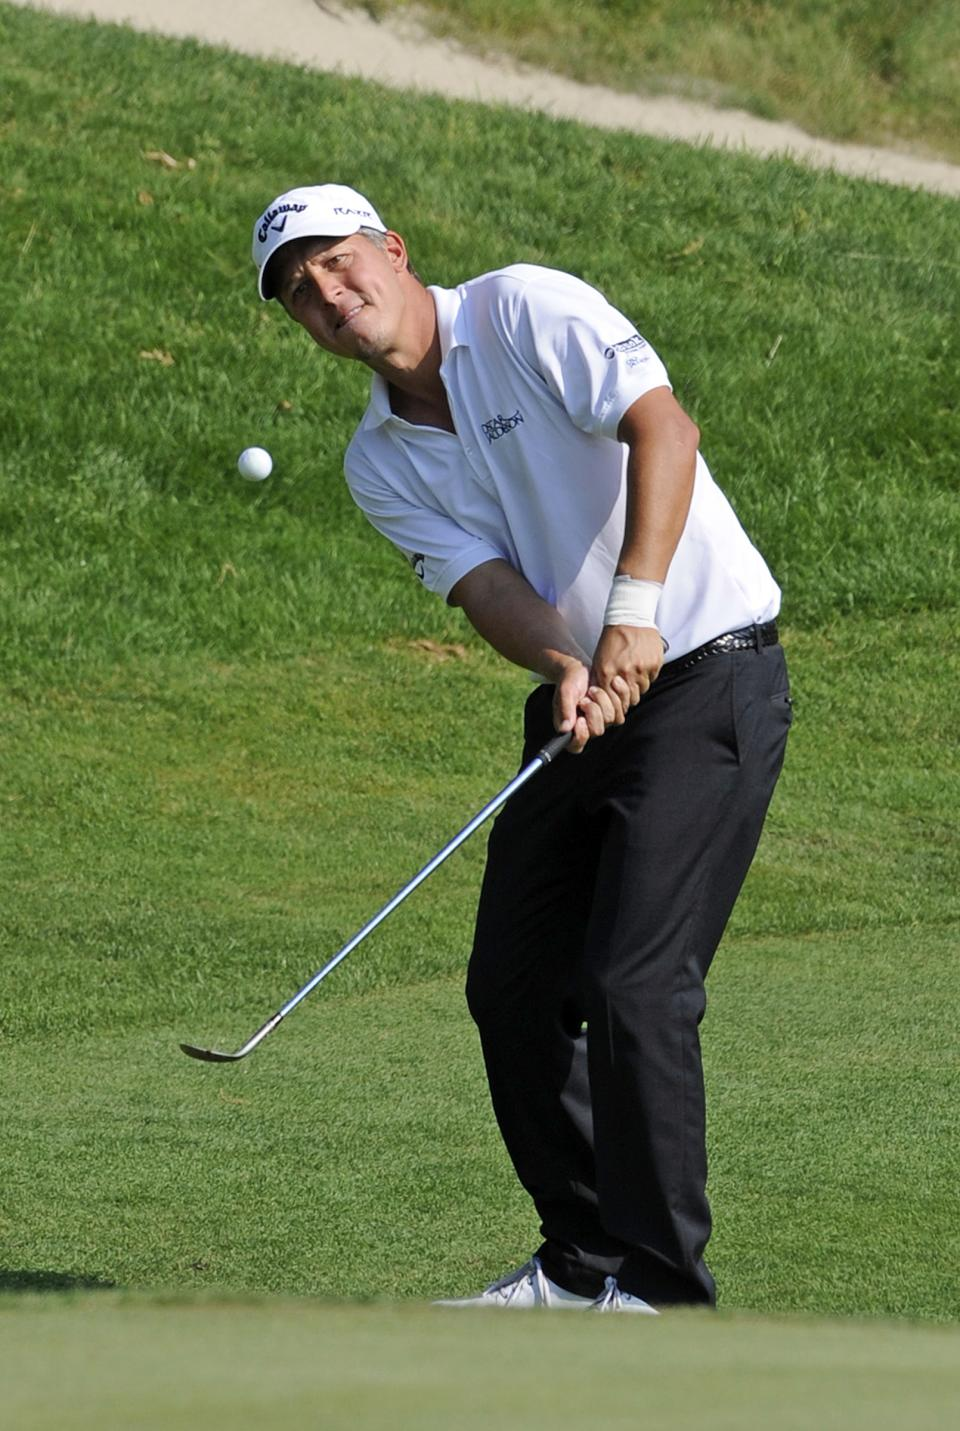 Frederik Jacobson, of Sweden, watches his chip-shot on the 15th hole during the first round of the Travelers Championship golf tournament in Cromwell, Conn., Thursday, June 21, 2012. Jacobson finished with a 5-under par 65. (AP Photo/Fred Beckham)